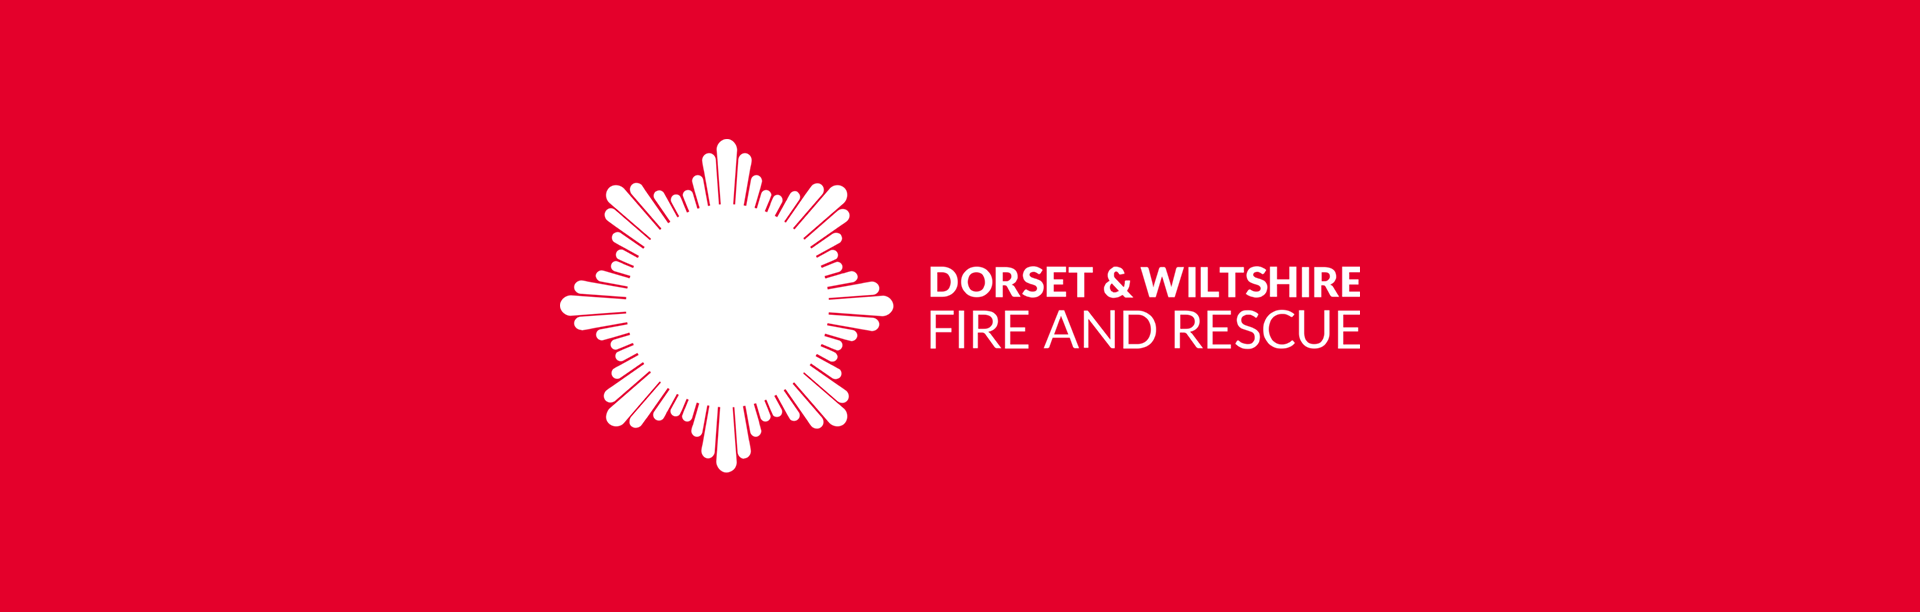 Dorset and Wiltshire Fire Service roll out Fresh Intranet across their entire organisation